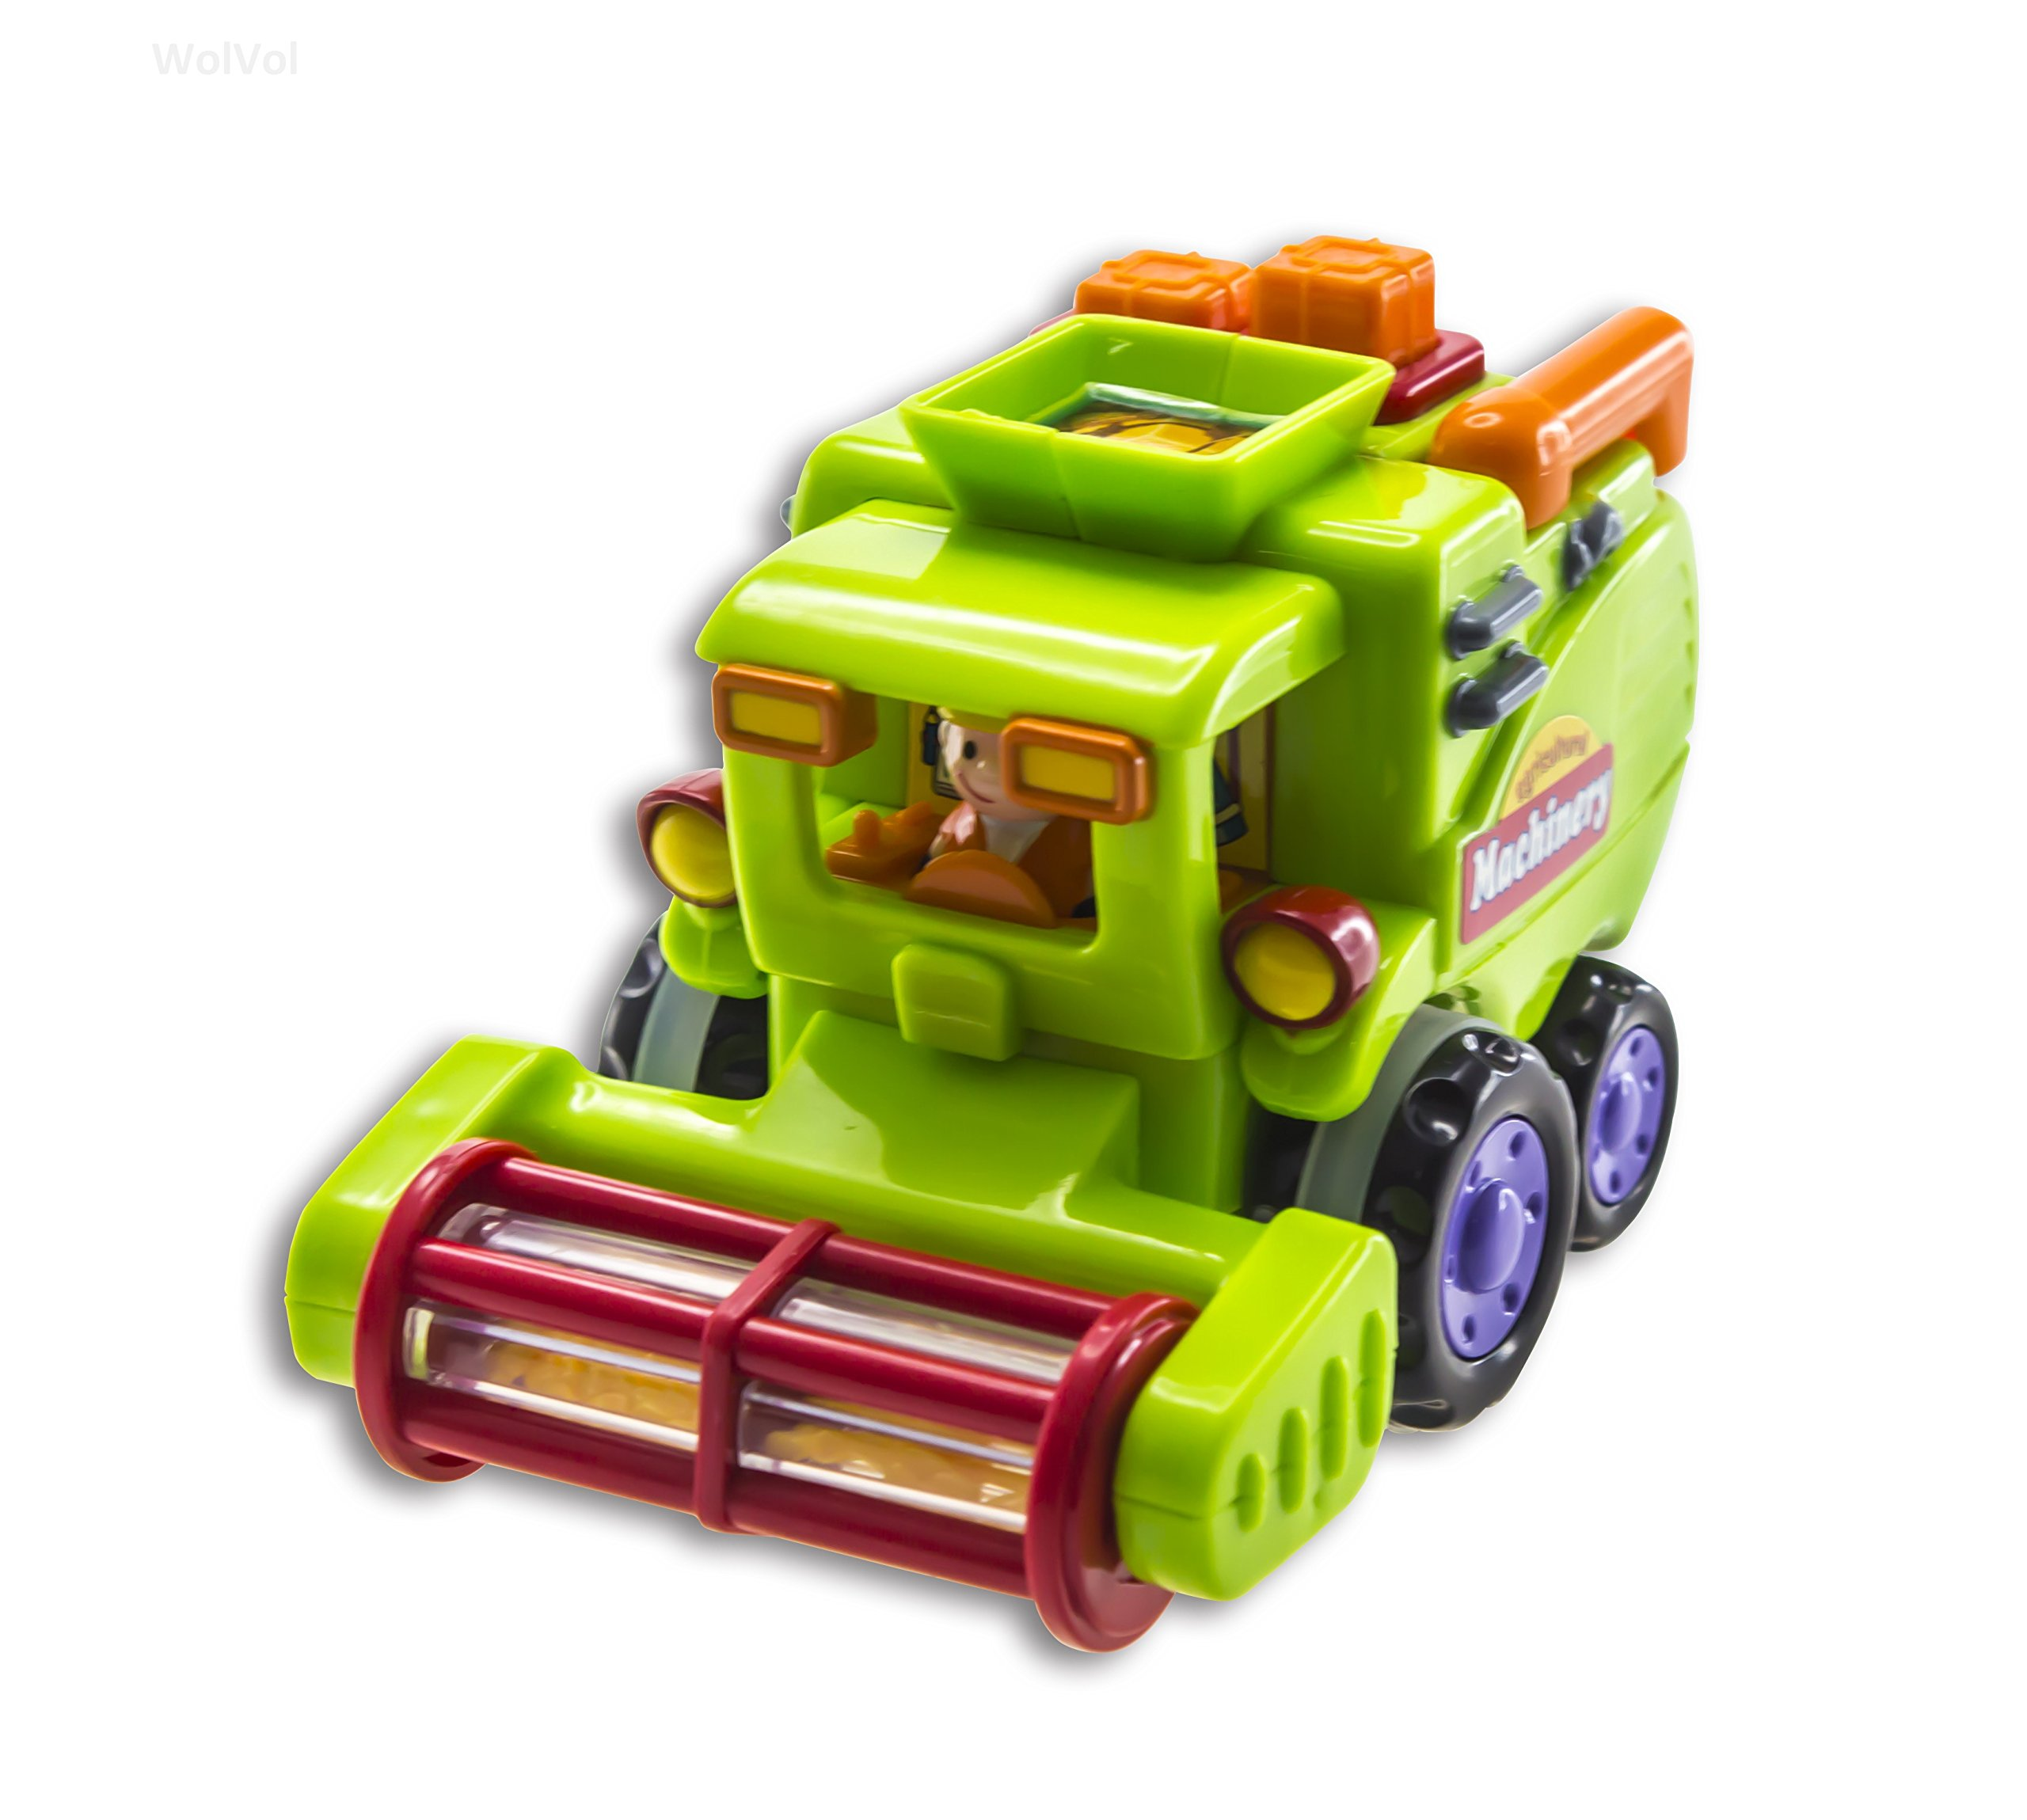 WolVol (Set of 3) Push and Go Friction Powered Car Toys for Boys - Street Sweeper Truck, Cement Mixer Truck, Harvester Toy Truck (Cars Have Automatic Functions) by WolVol (Image #4)